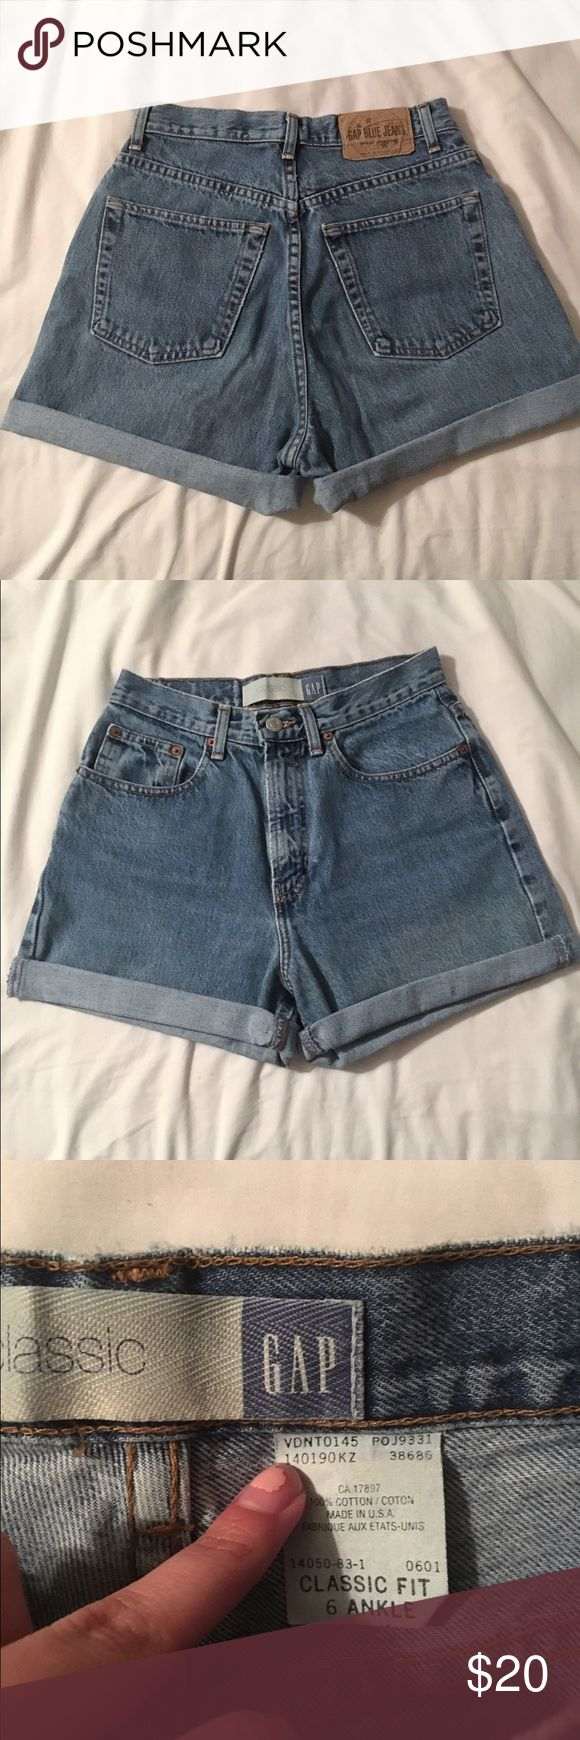 Vintage high waisted shorts Homemade denim gap shorts! Super comfy, could roll up if you want a shorter look 🌺 size says 6 but actually size ranges from size 0-3, depending on how tight you like your shorts. I range from a size 0-3 and these fit me well. Feel free to ask questions! GAP Shorts Jean Shorts